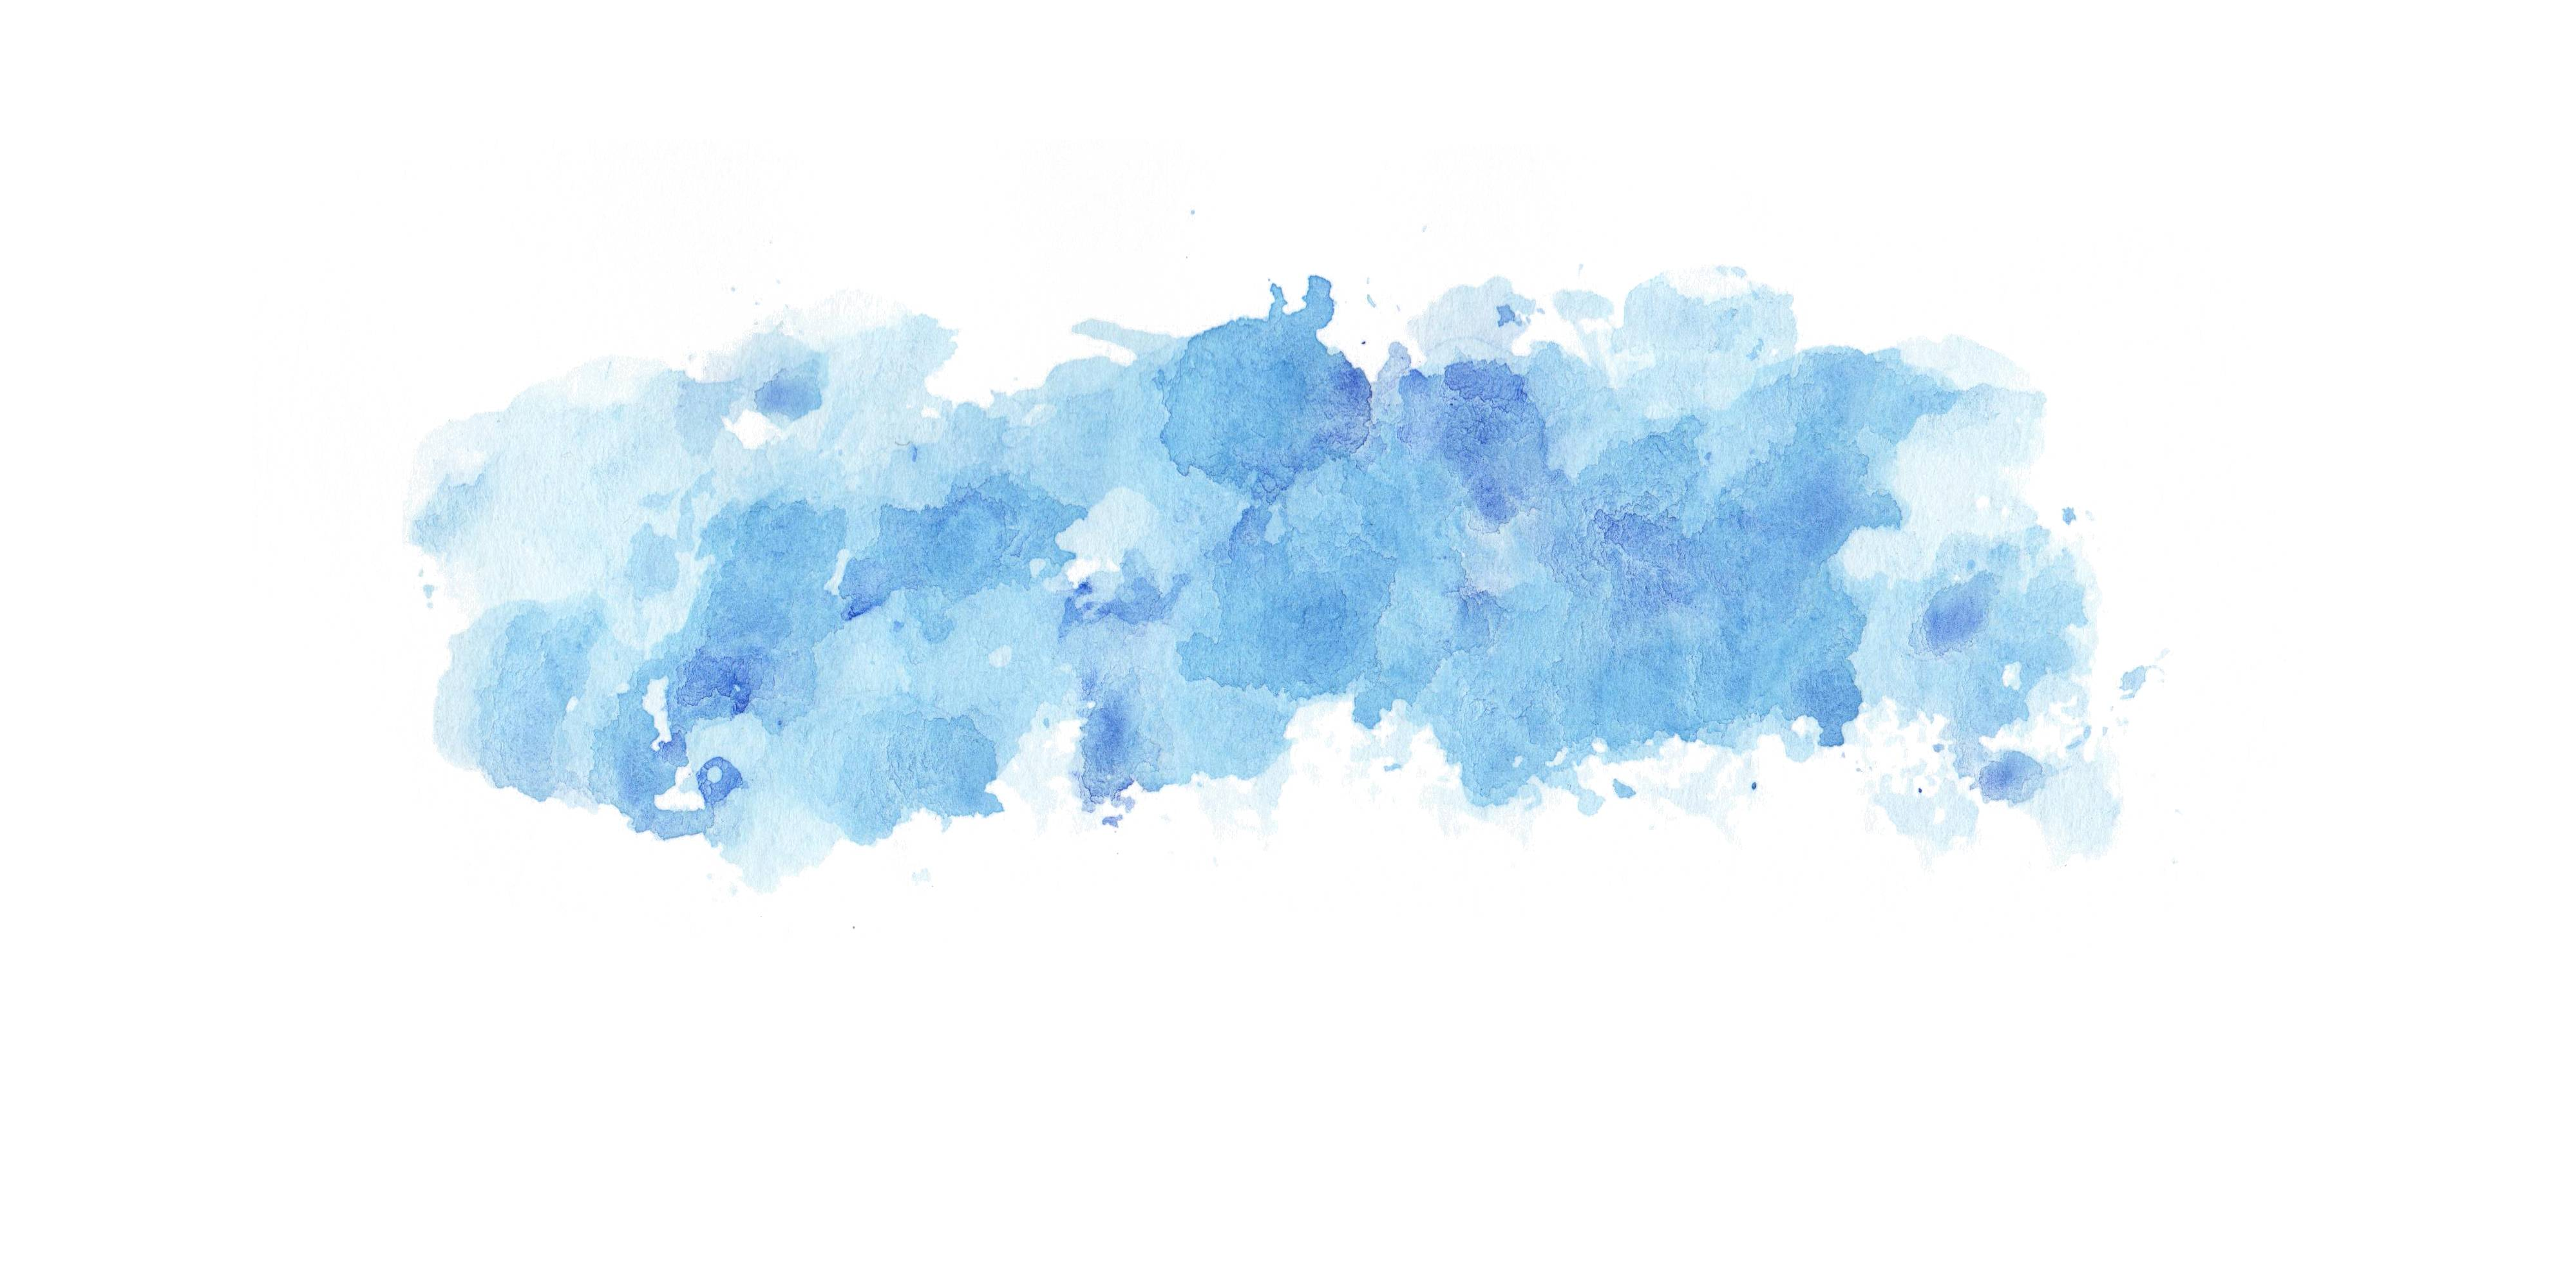 Watercolor Texture Png - 5 Blue Watercolor Clouds Wash Texture (JPG) | OnlyGFX.com